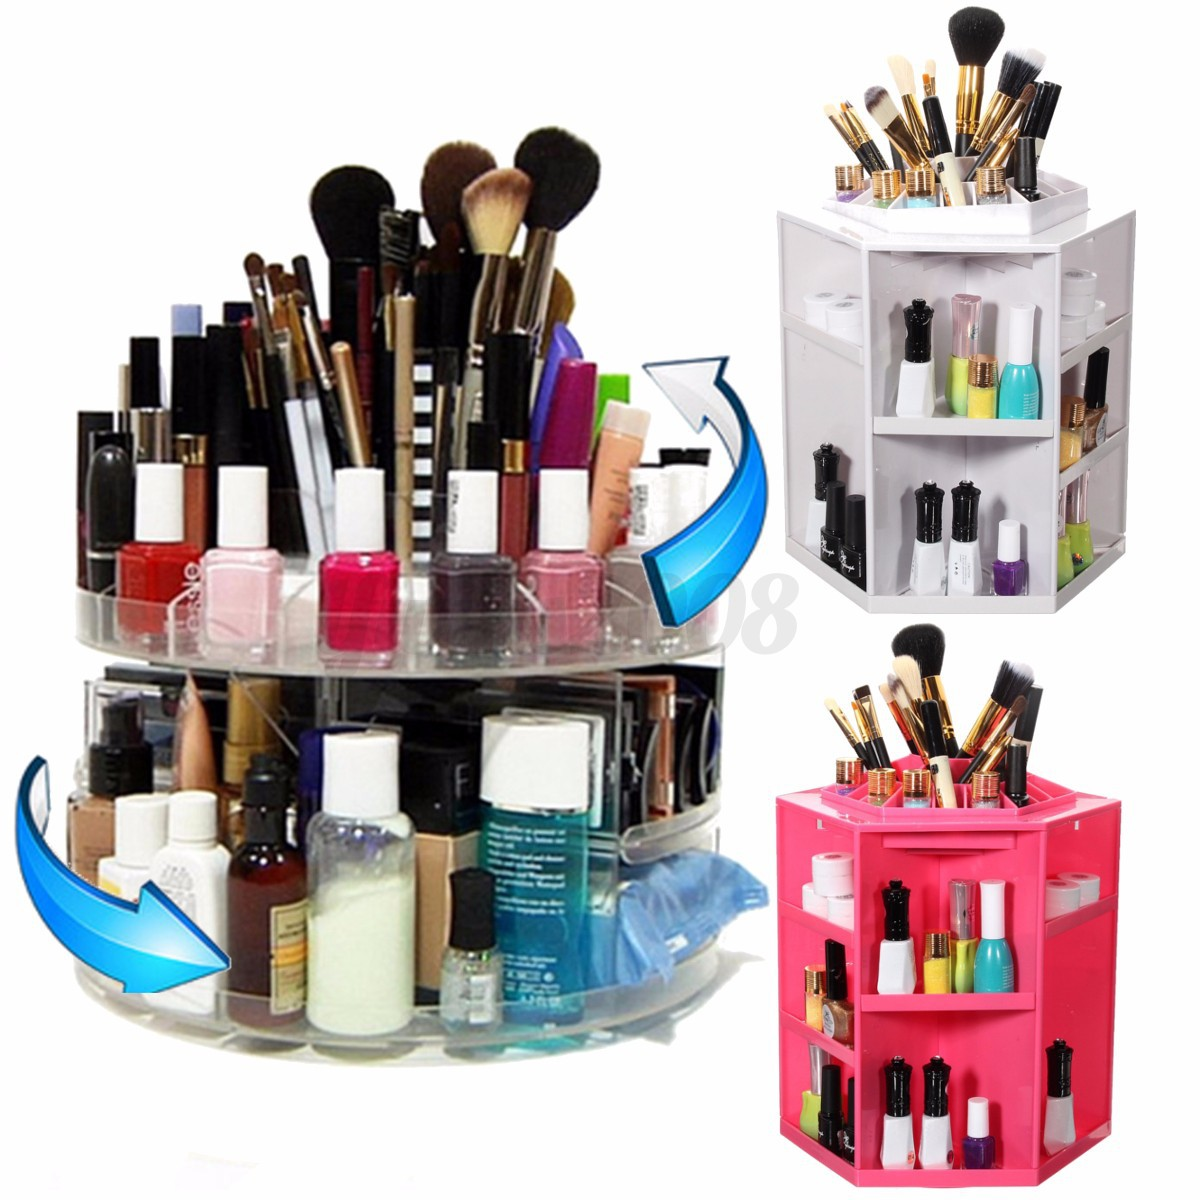 acrylique bo te pr sentoir de maquillage rangement rond organisateur cosm tique eur 15 59. Black Bedroom Furniture Sets. Home Design Ideas